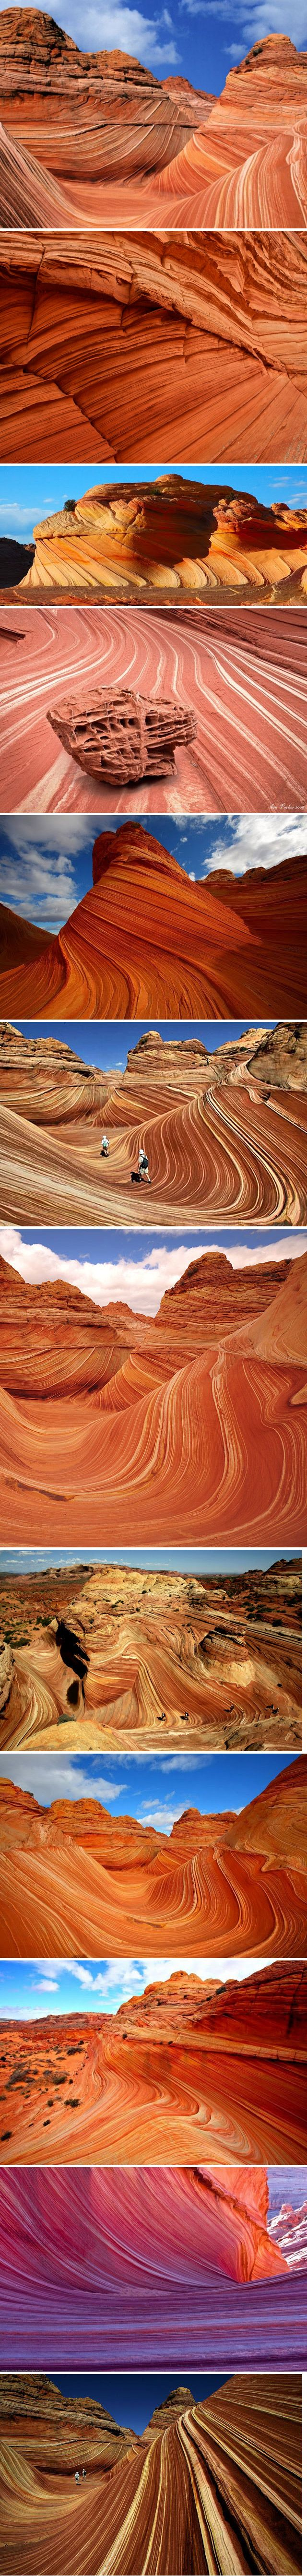 The Wave is a sandstone rock formation located in the United States of America near the Arizona-Utah border, on the slopes of the Coyote Buttes, in the Paria Canyon-Vermilion Cliffs Wilderness, on the Colorado Plateau. It is famous among hikers and photographers for its colorful, undulating forms, and the rugged, trackless hike required to reach it.